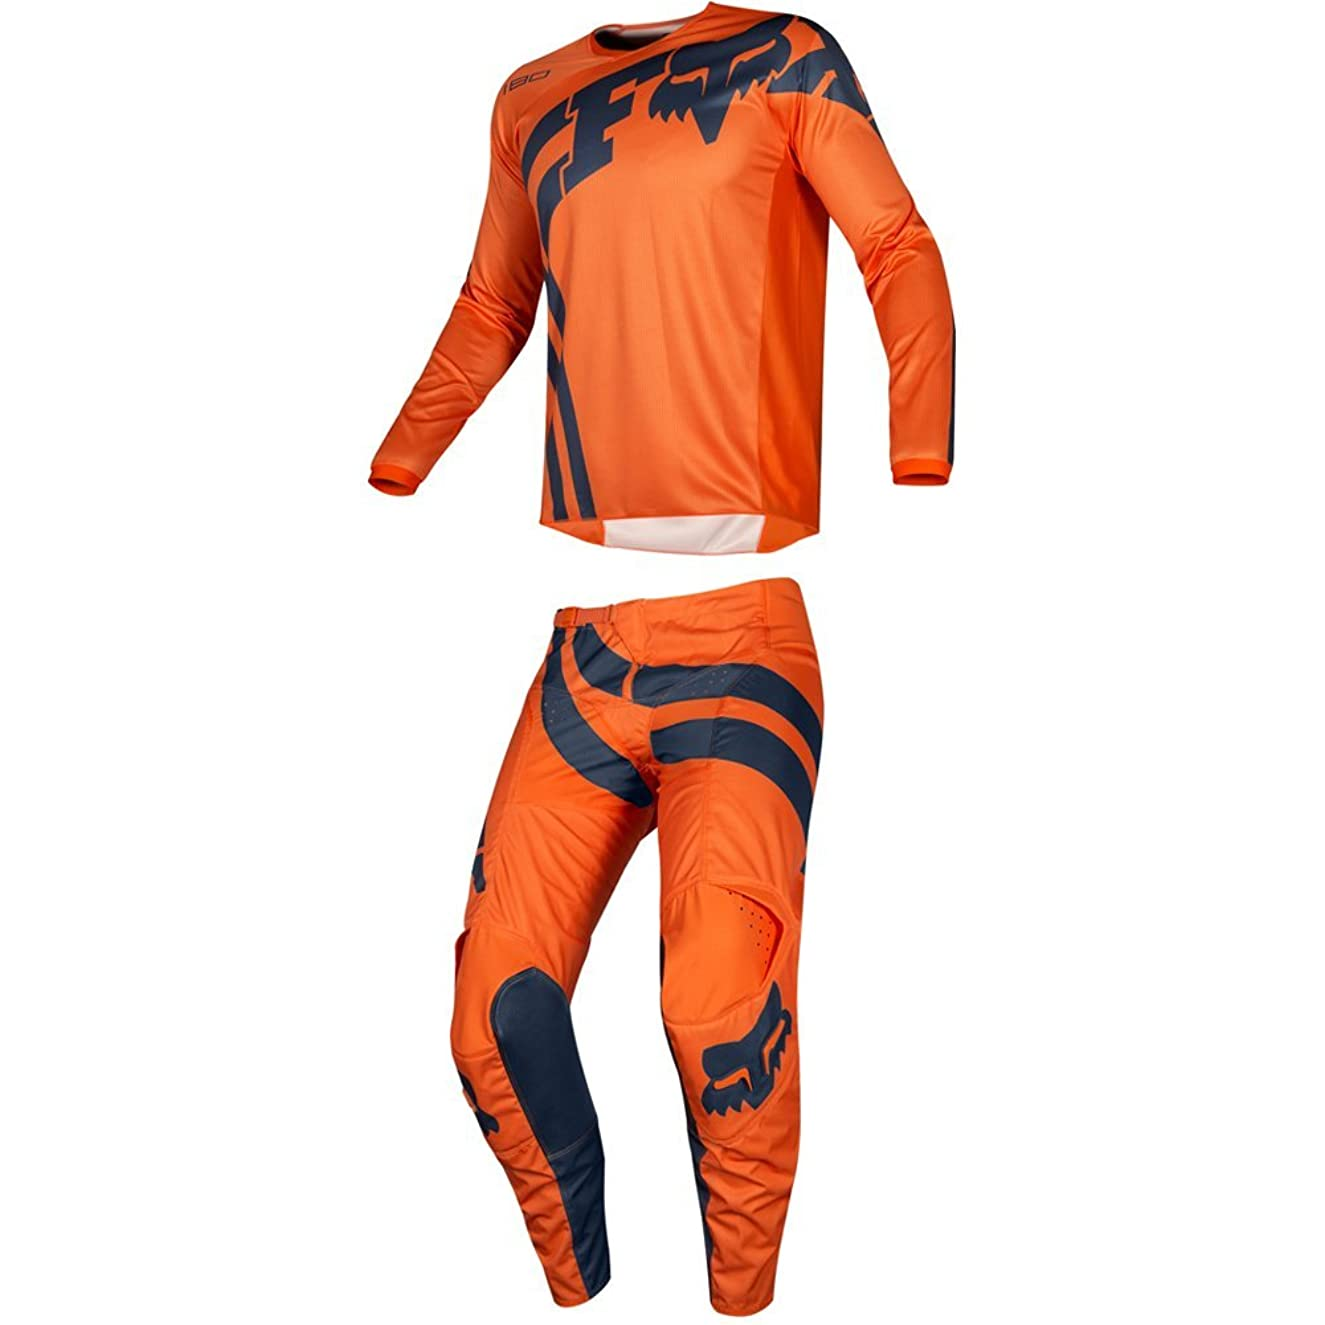 Fox Racing 2019 YOUTH 180 COTA Jersey and Pants Combo Offroad Riding Gear Orange XL Jersey/Pants 28W